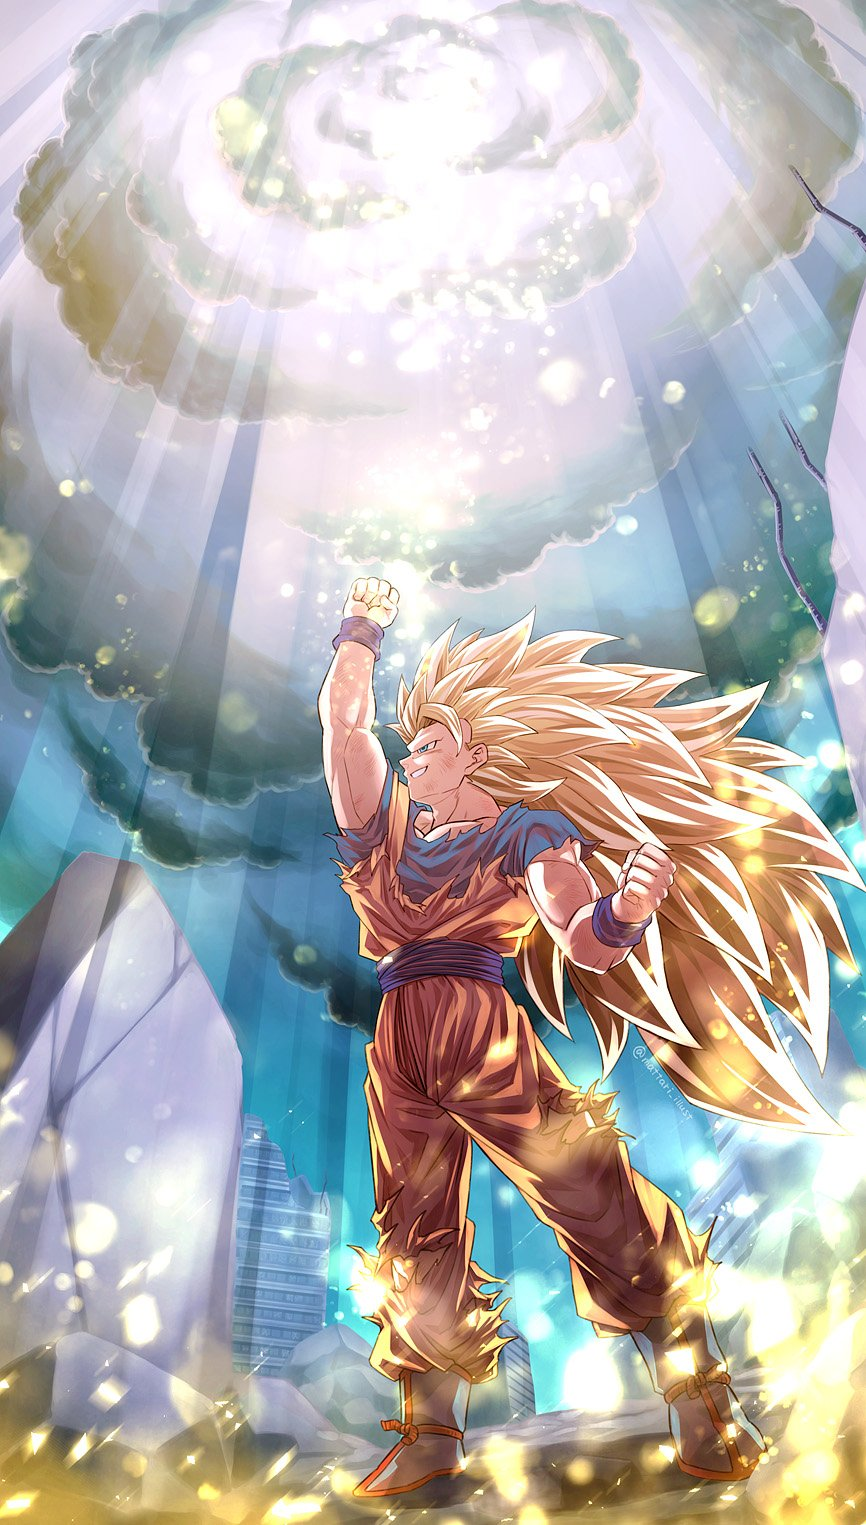 1boy absurdly_long_hair arm_at_side arm_up backlighting blonde_hair blue_eyes blurry blurry_foreground bokeh boots building city clenched_hands clouds cloudy_sky commentary_request dark_clouds day depth_of_field dirty dirty_clothes dirty_face dougi dragon_ball dragon_ball_z energy from_below frown full_body glowing grin highres legs_apart light_particles light_rays long_hair looking_up male_focus mattari_illust no_eyebrows outdoors pectorals profile rock rubble ruins shirt sky skyscraper smile son_gokuu sparkle standing sunlight super_saiyan_3 torn_clothes torn_legwear torn_shirt twitter_username very_long_hair wristband